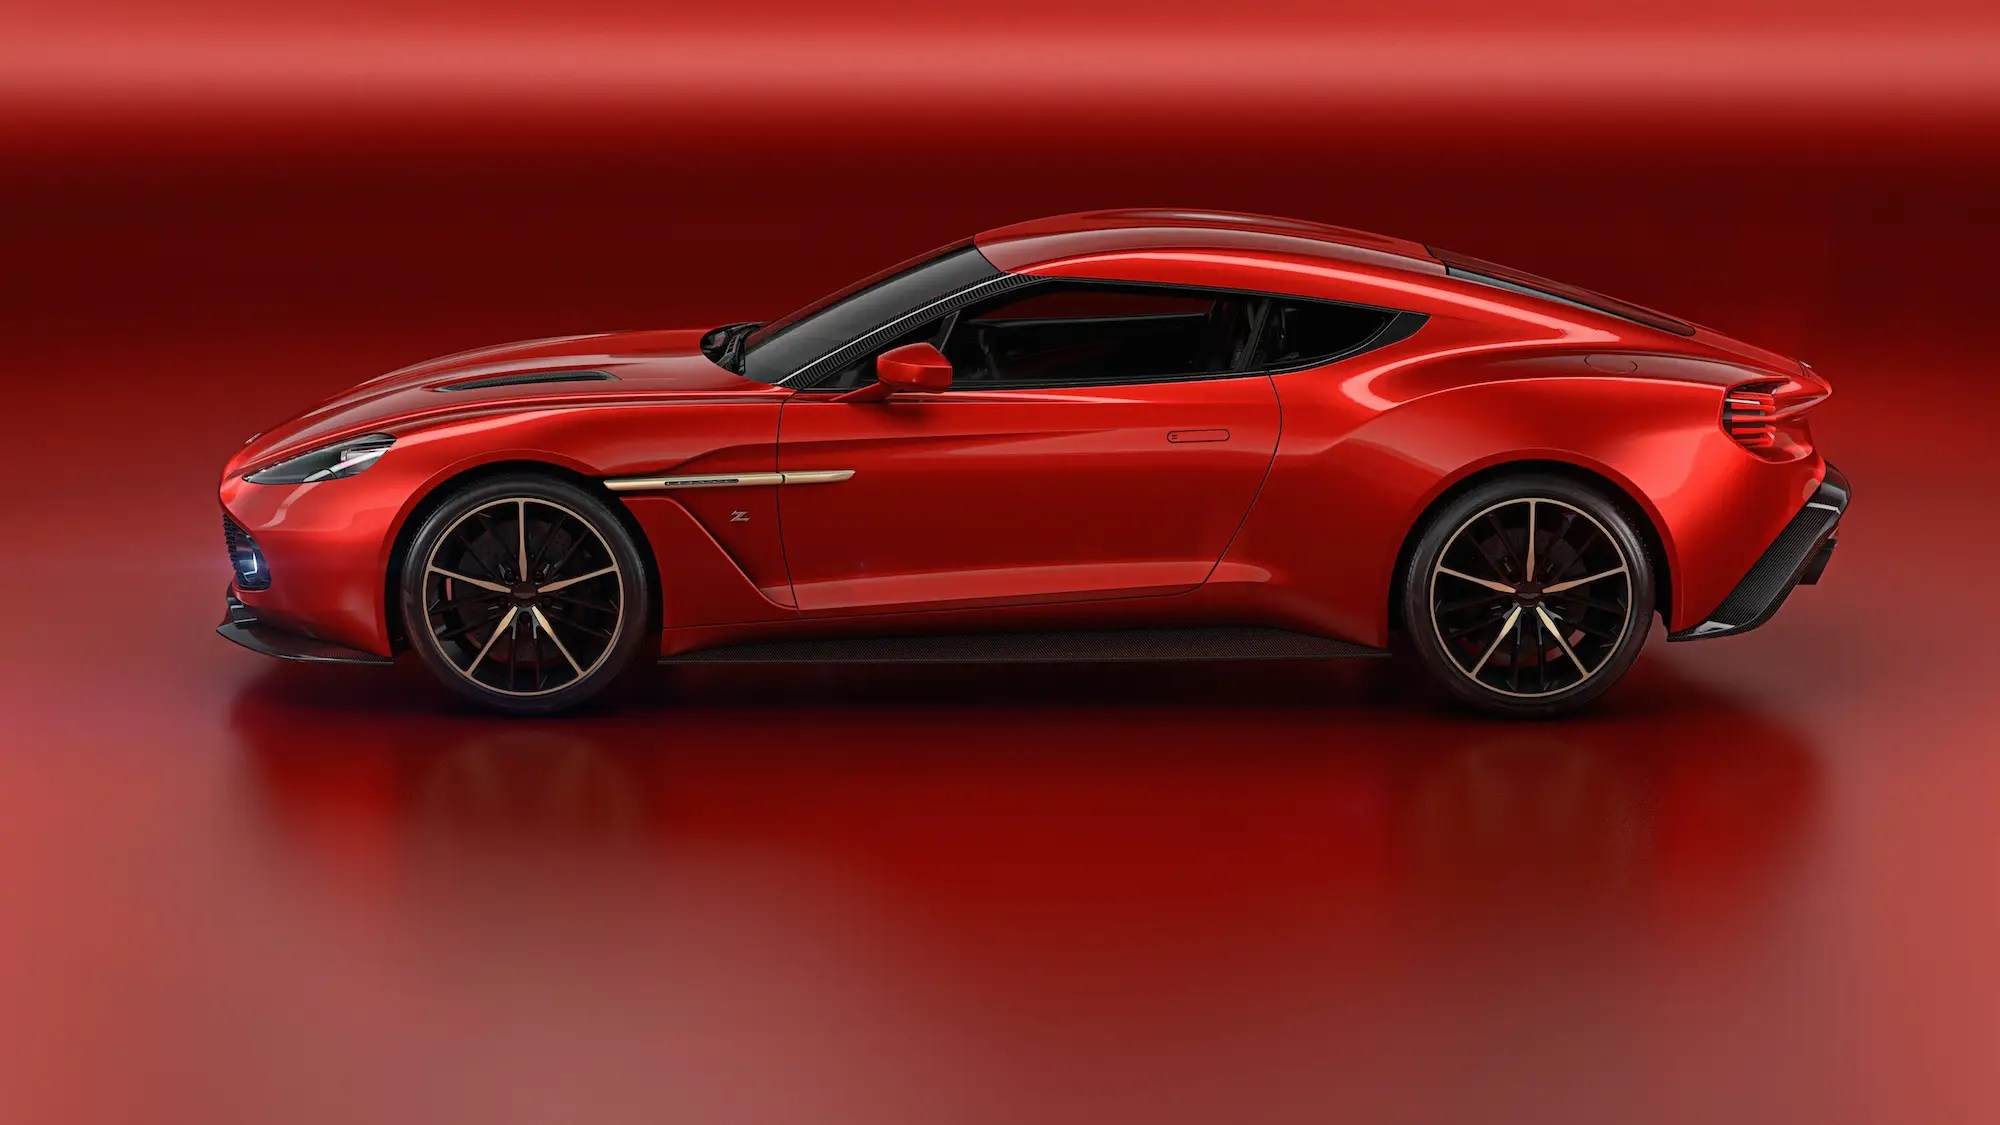 11. Aston Martin showed off a beautiful concept car in May called the Vanquish Zagato Concept.